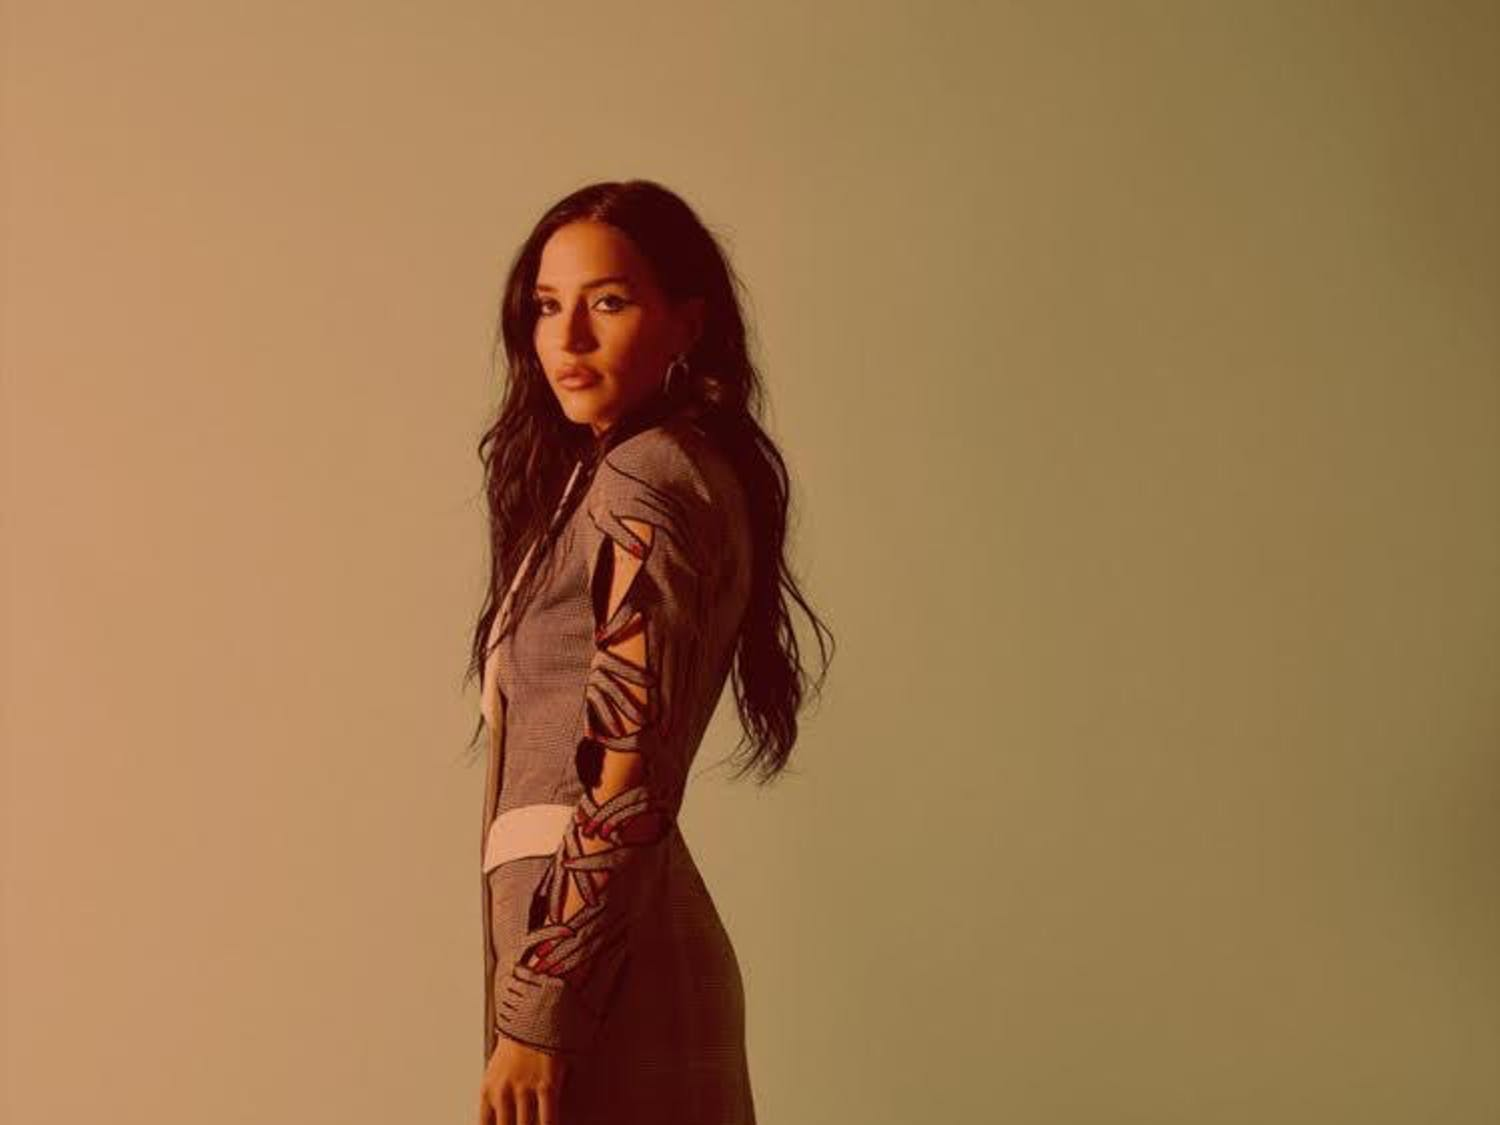 """Pop star Lennon Stella plays Toronto's Danforth Music Hall in March and Buffalo's KeyBank Center this October. We caught up with Stella before her shows to talk about her upcoming debut album, musical roots and Liam Payne collaboration """"Polaroid."""""""